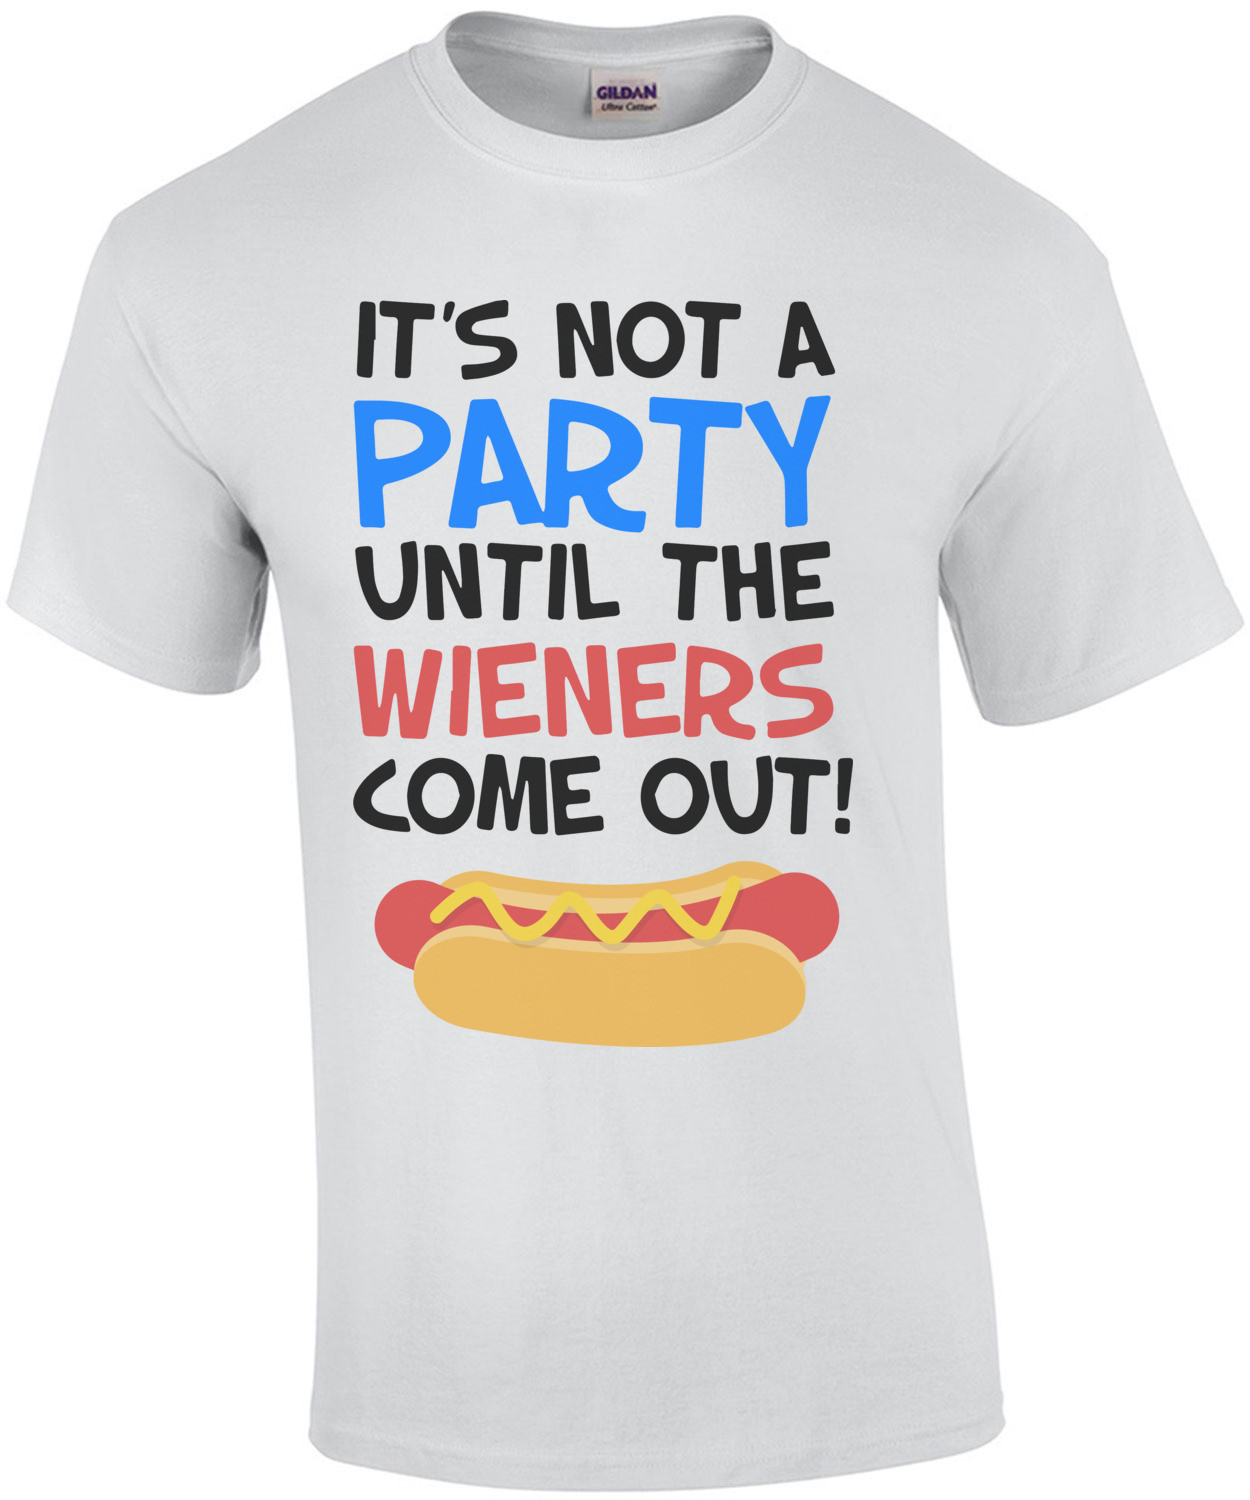 It's not a party until the wieners come out! Funny